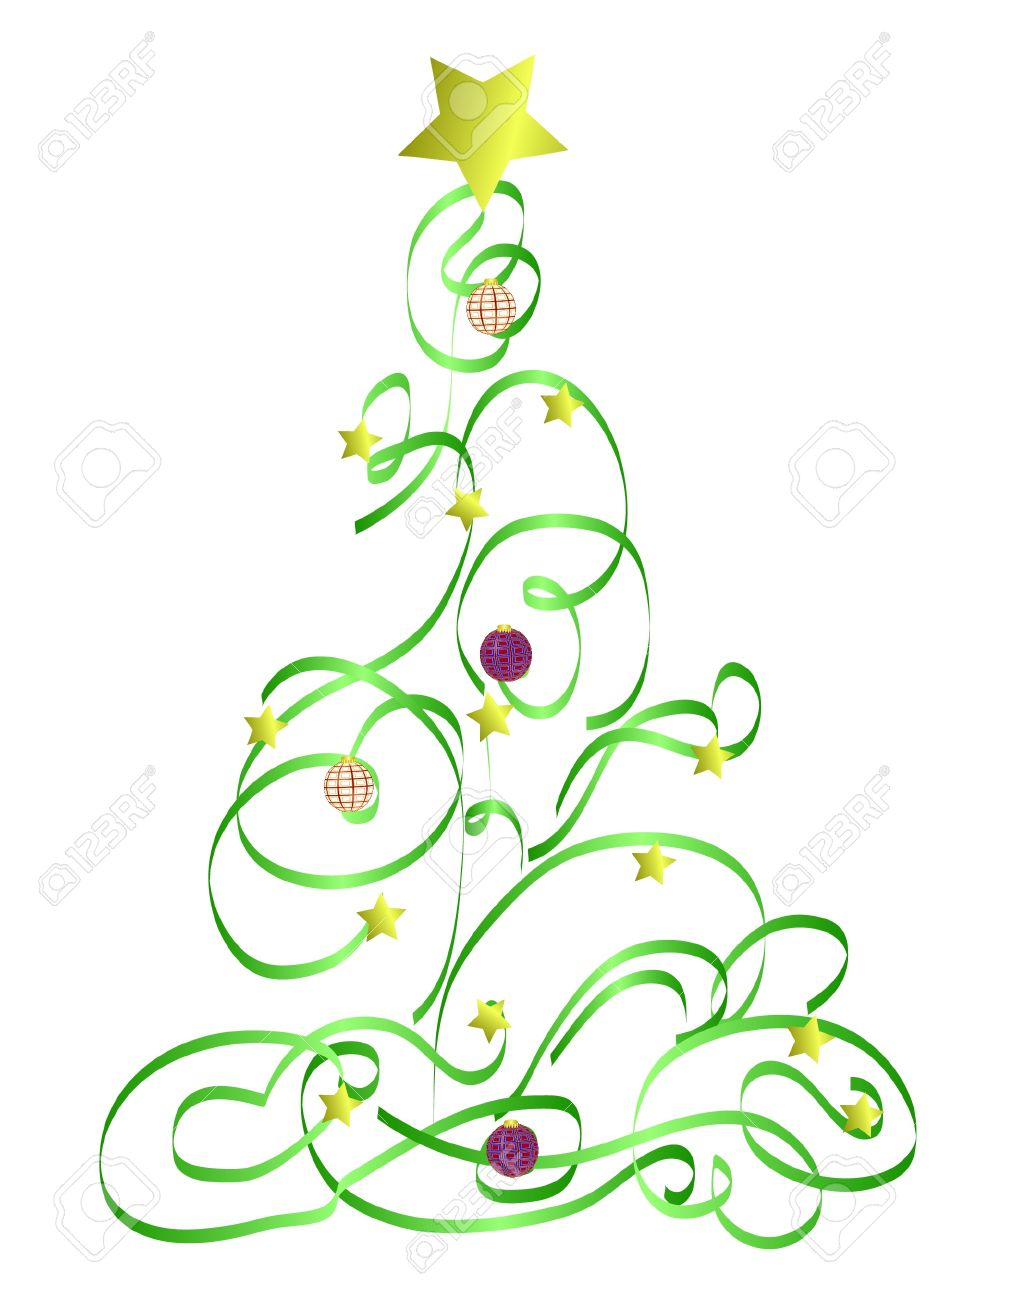 Abstract Christmas Tree Illustration.